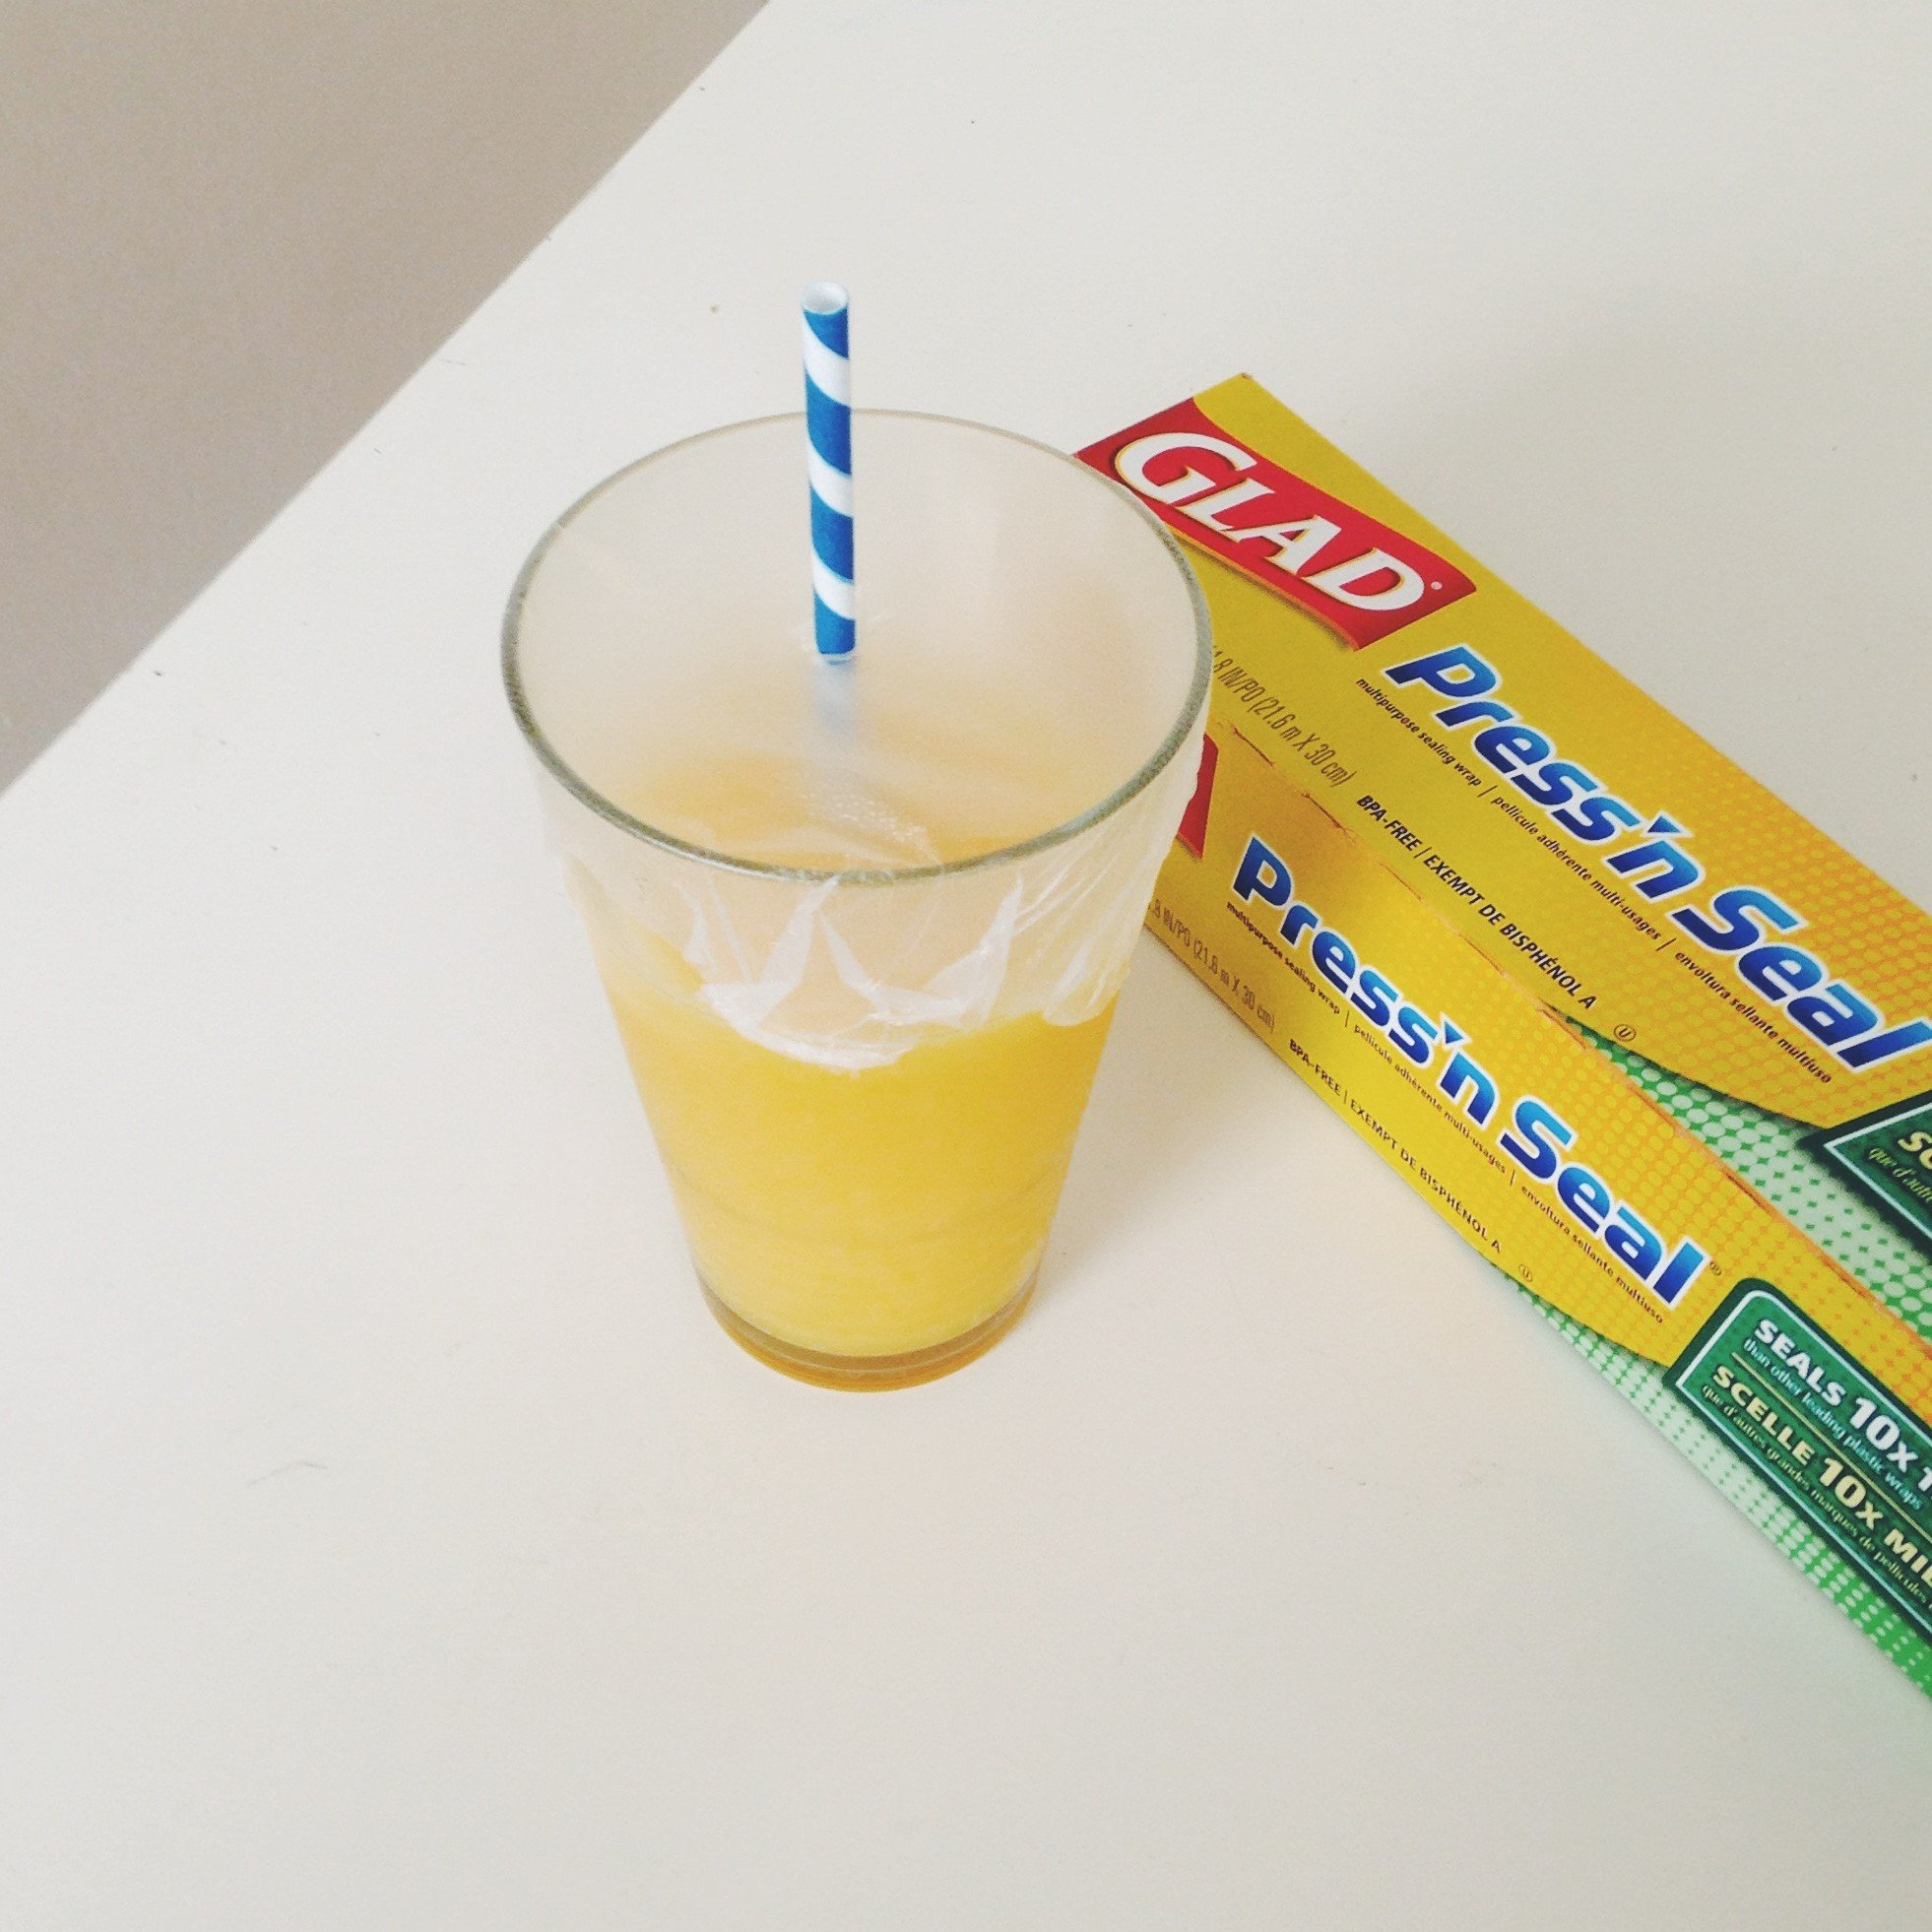 A DIY To-Go Cup for smoothies using Glad Press N Seal Wrap and A Straw